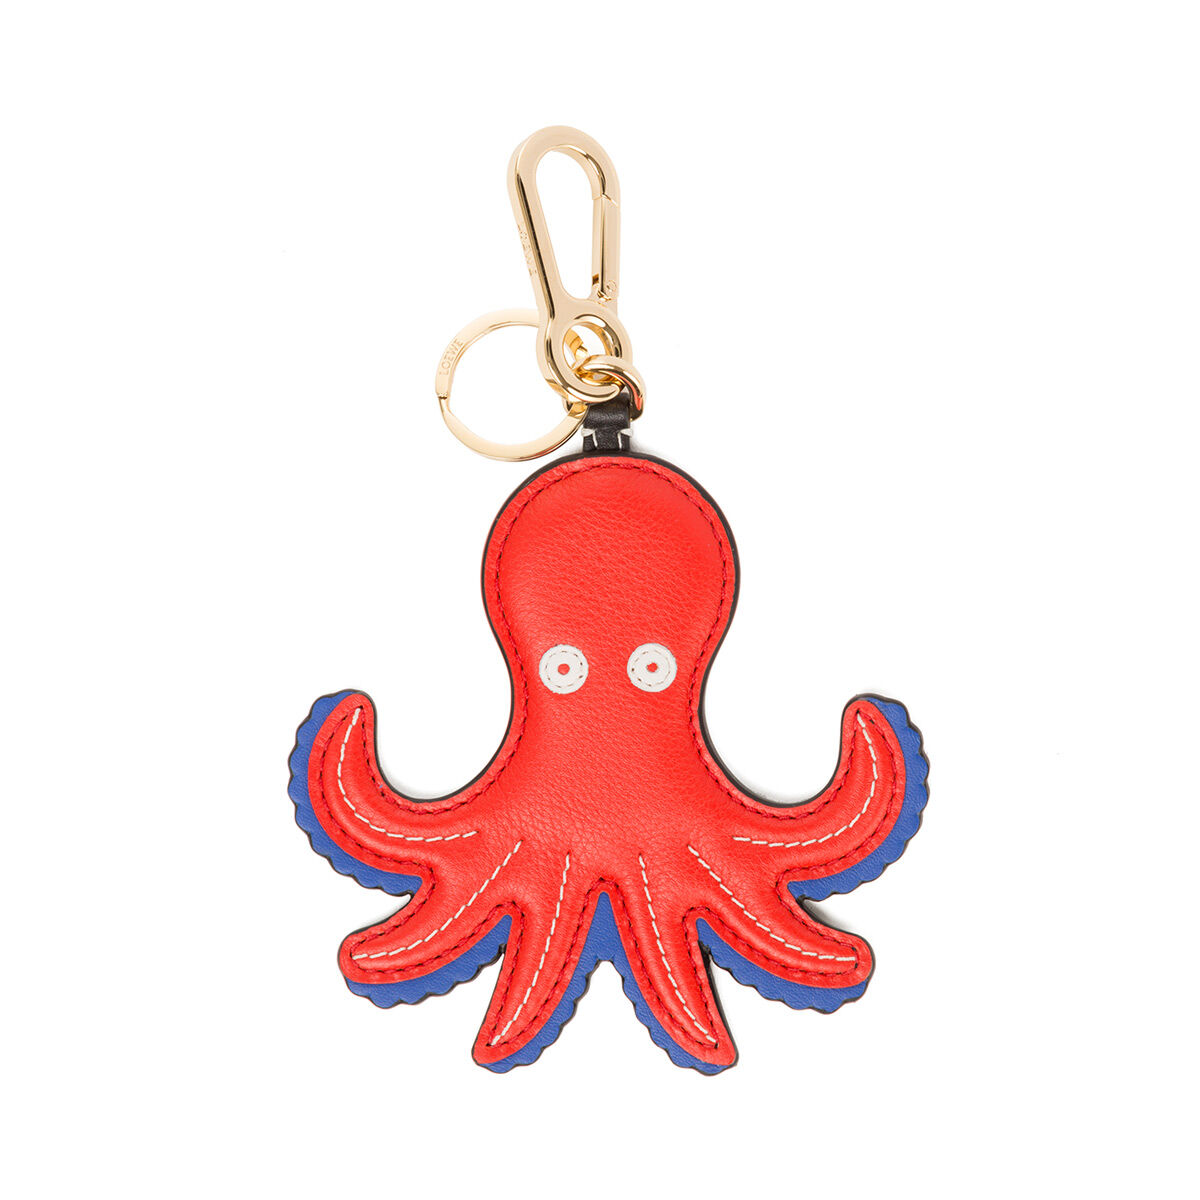 LOEWE Octopus  Charm Red/Blue all